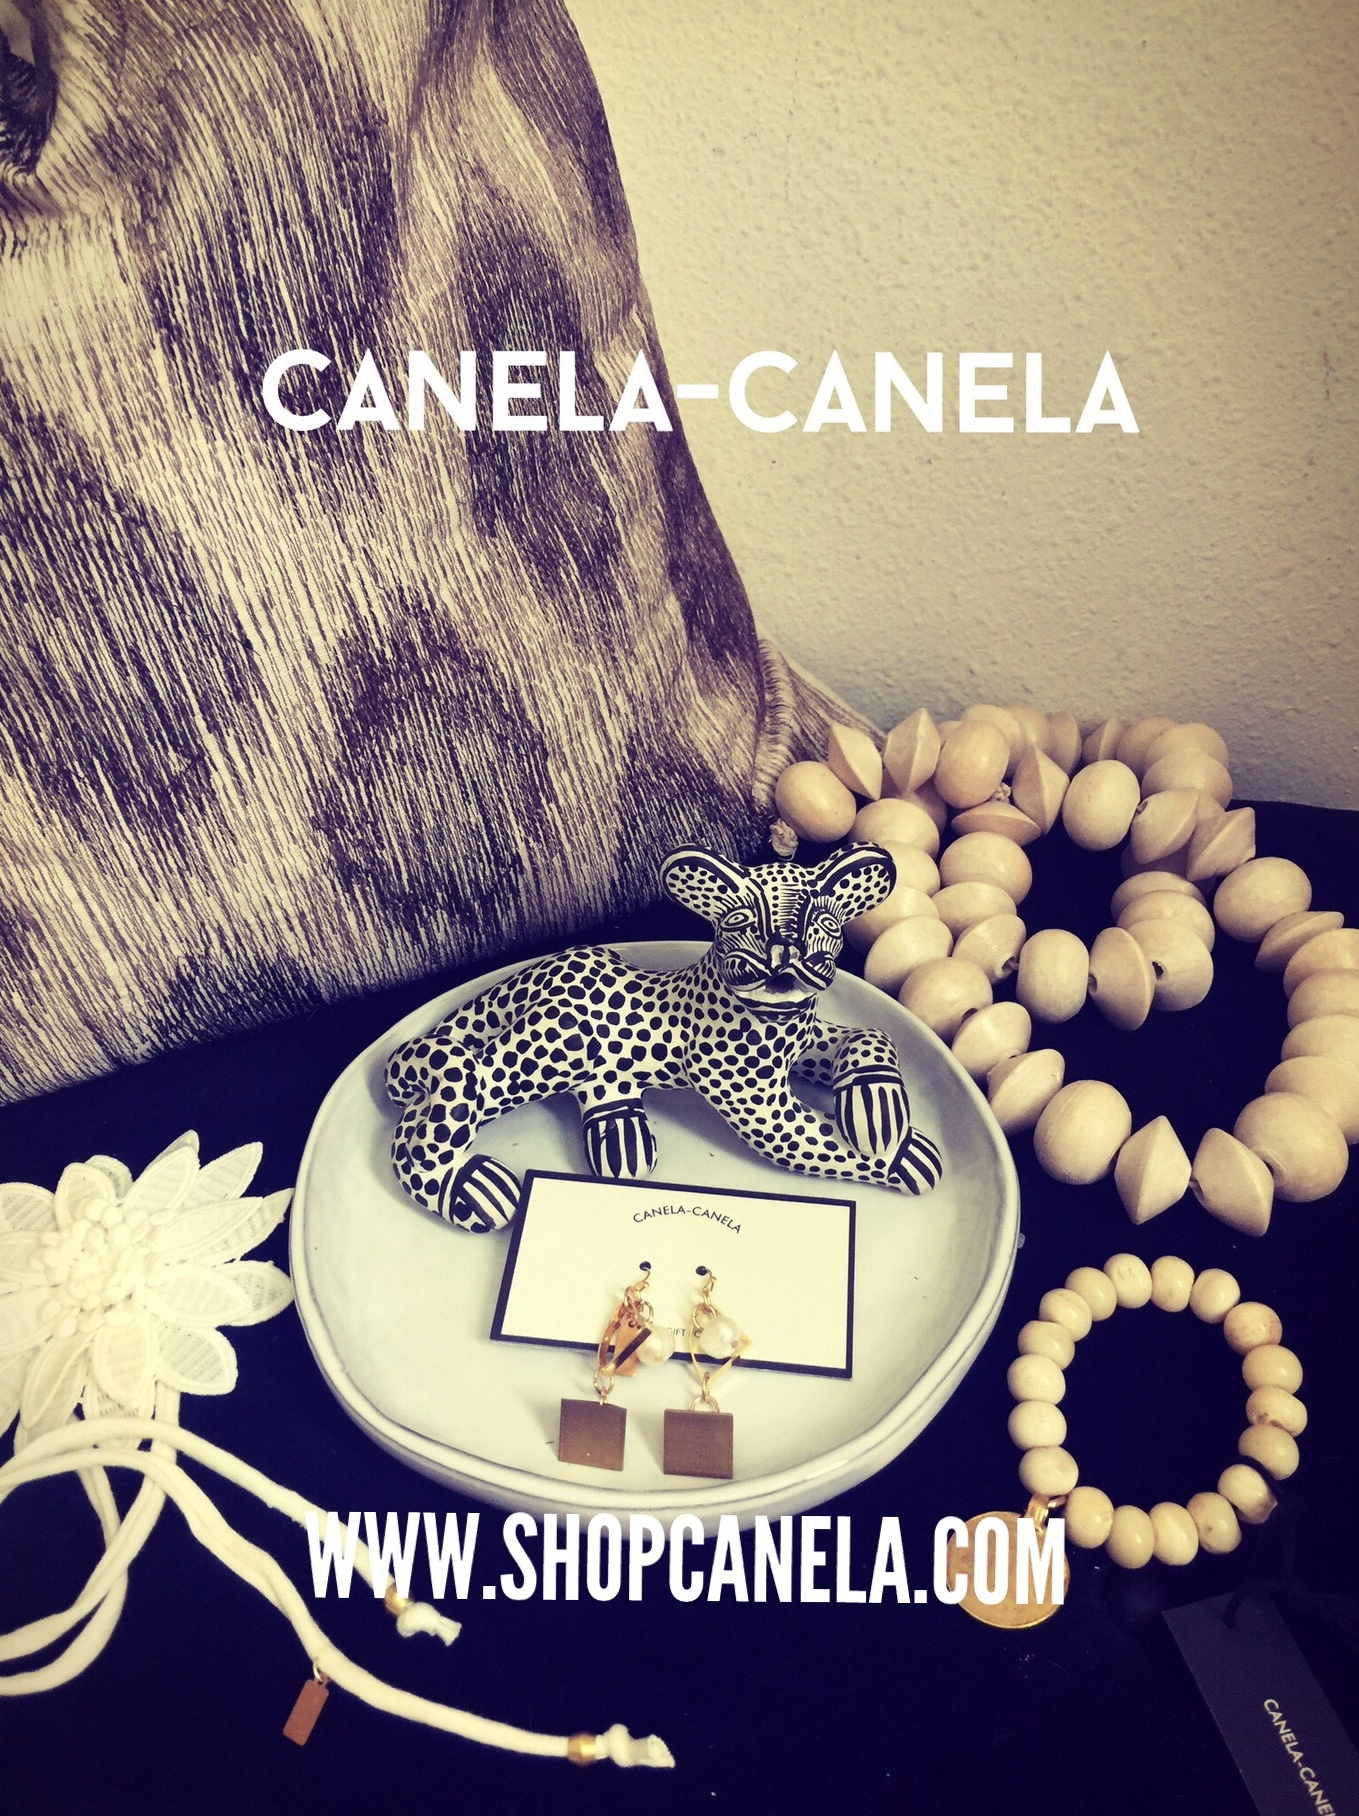 Canela - Canela Designs are one of Vibe Guide's Favorite Check out their Rentable options too!